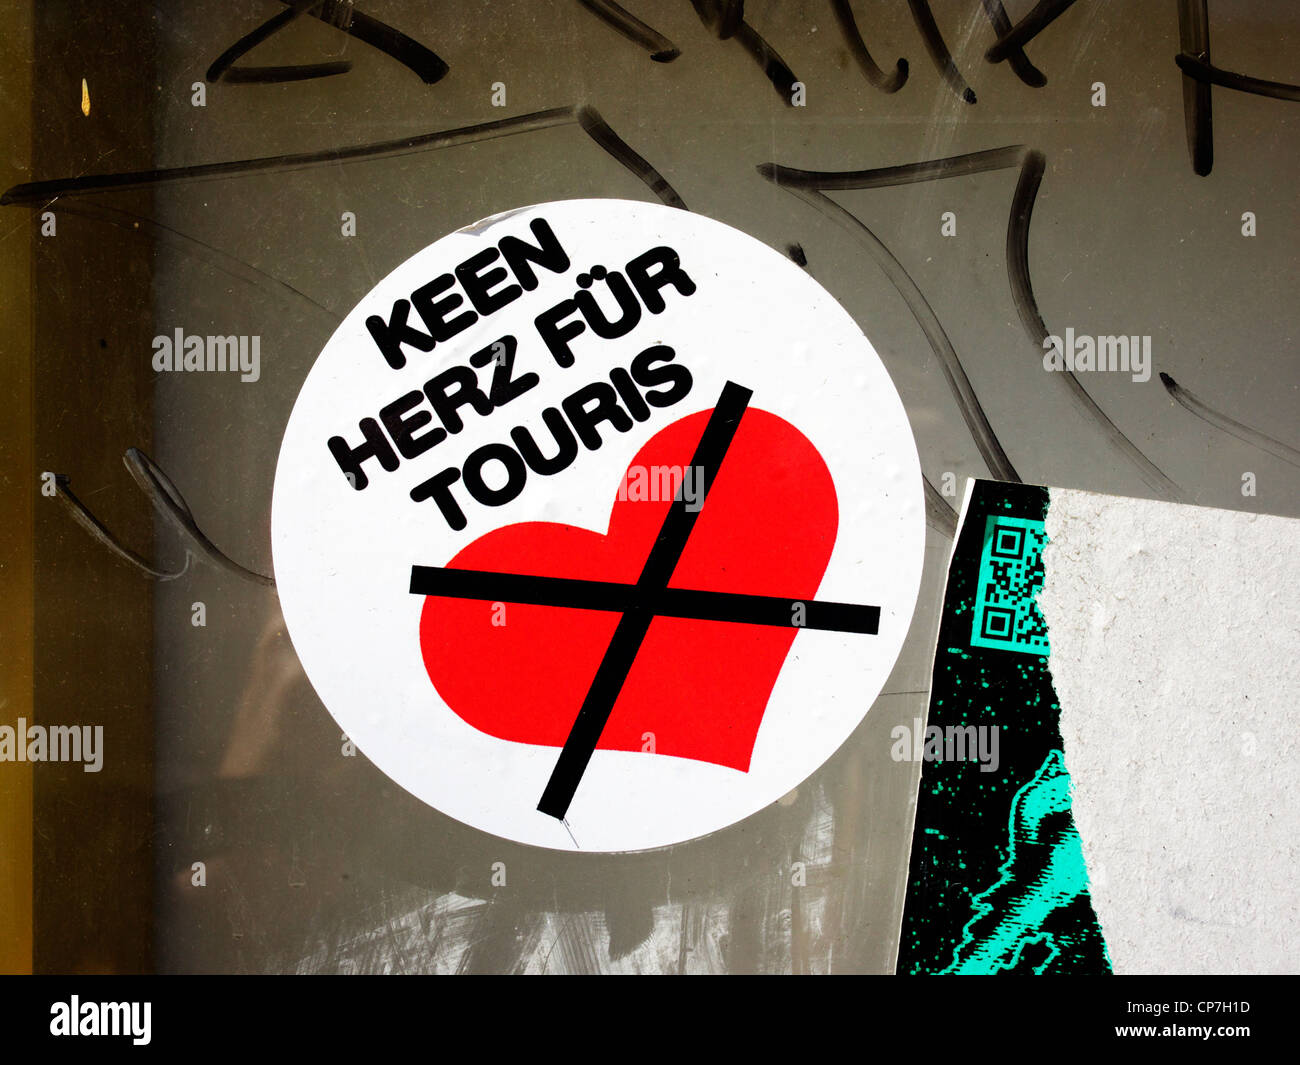 Sticker Saying No Heart For Tourists Berlin Germany